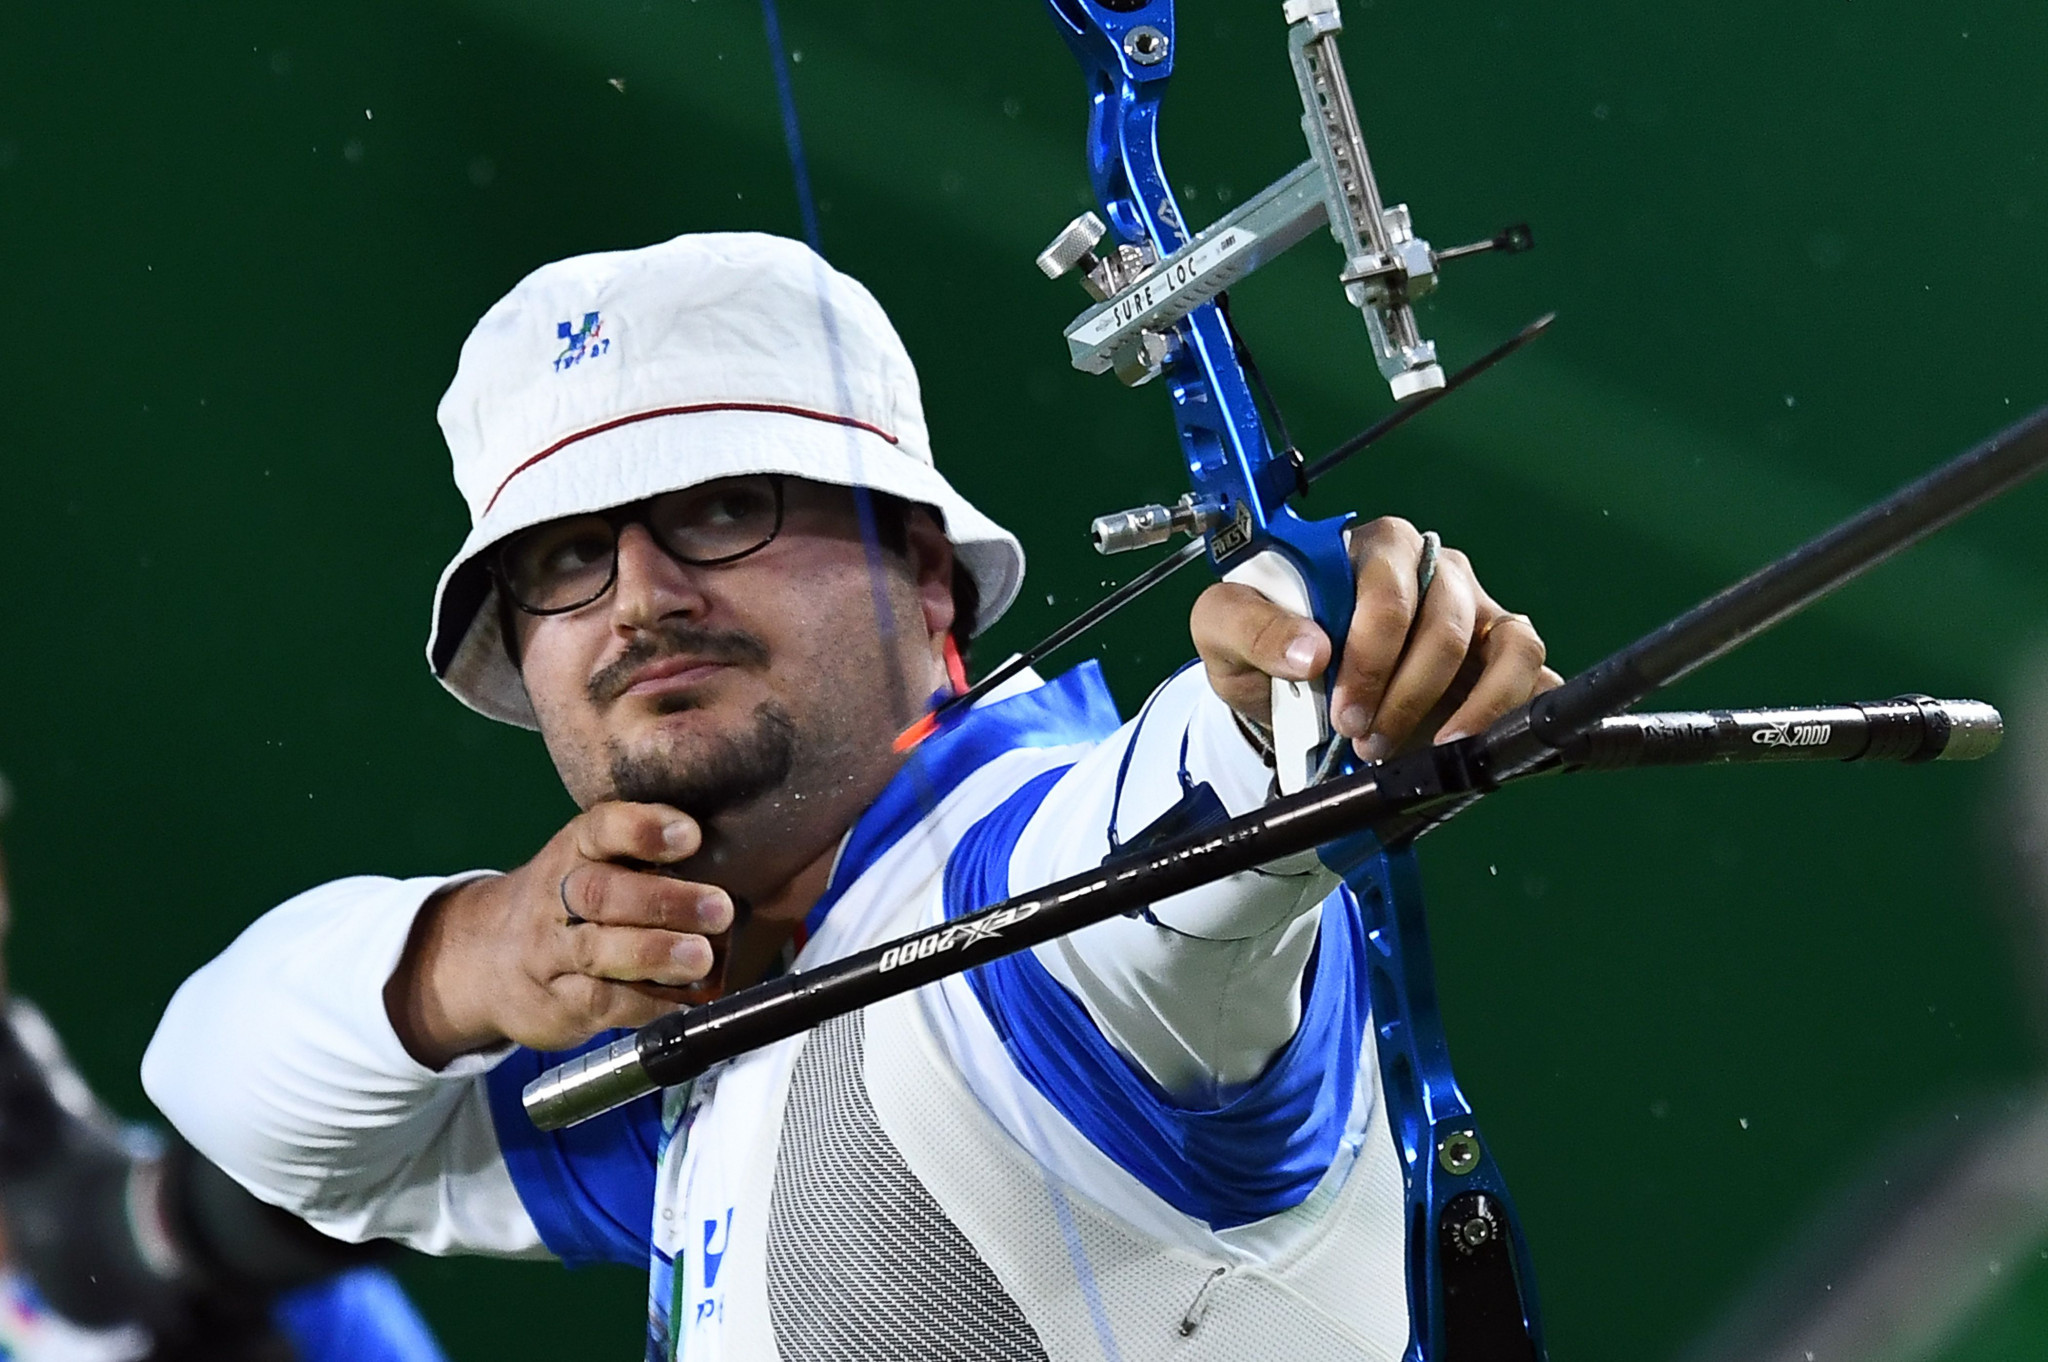 Galiazzo beats Ellison to gold at World Archery Indoor Series in Rome